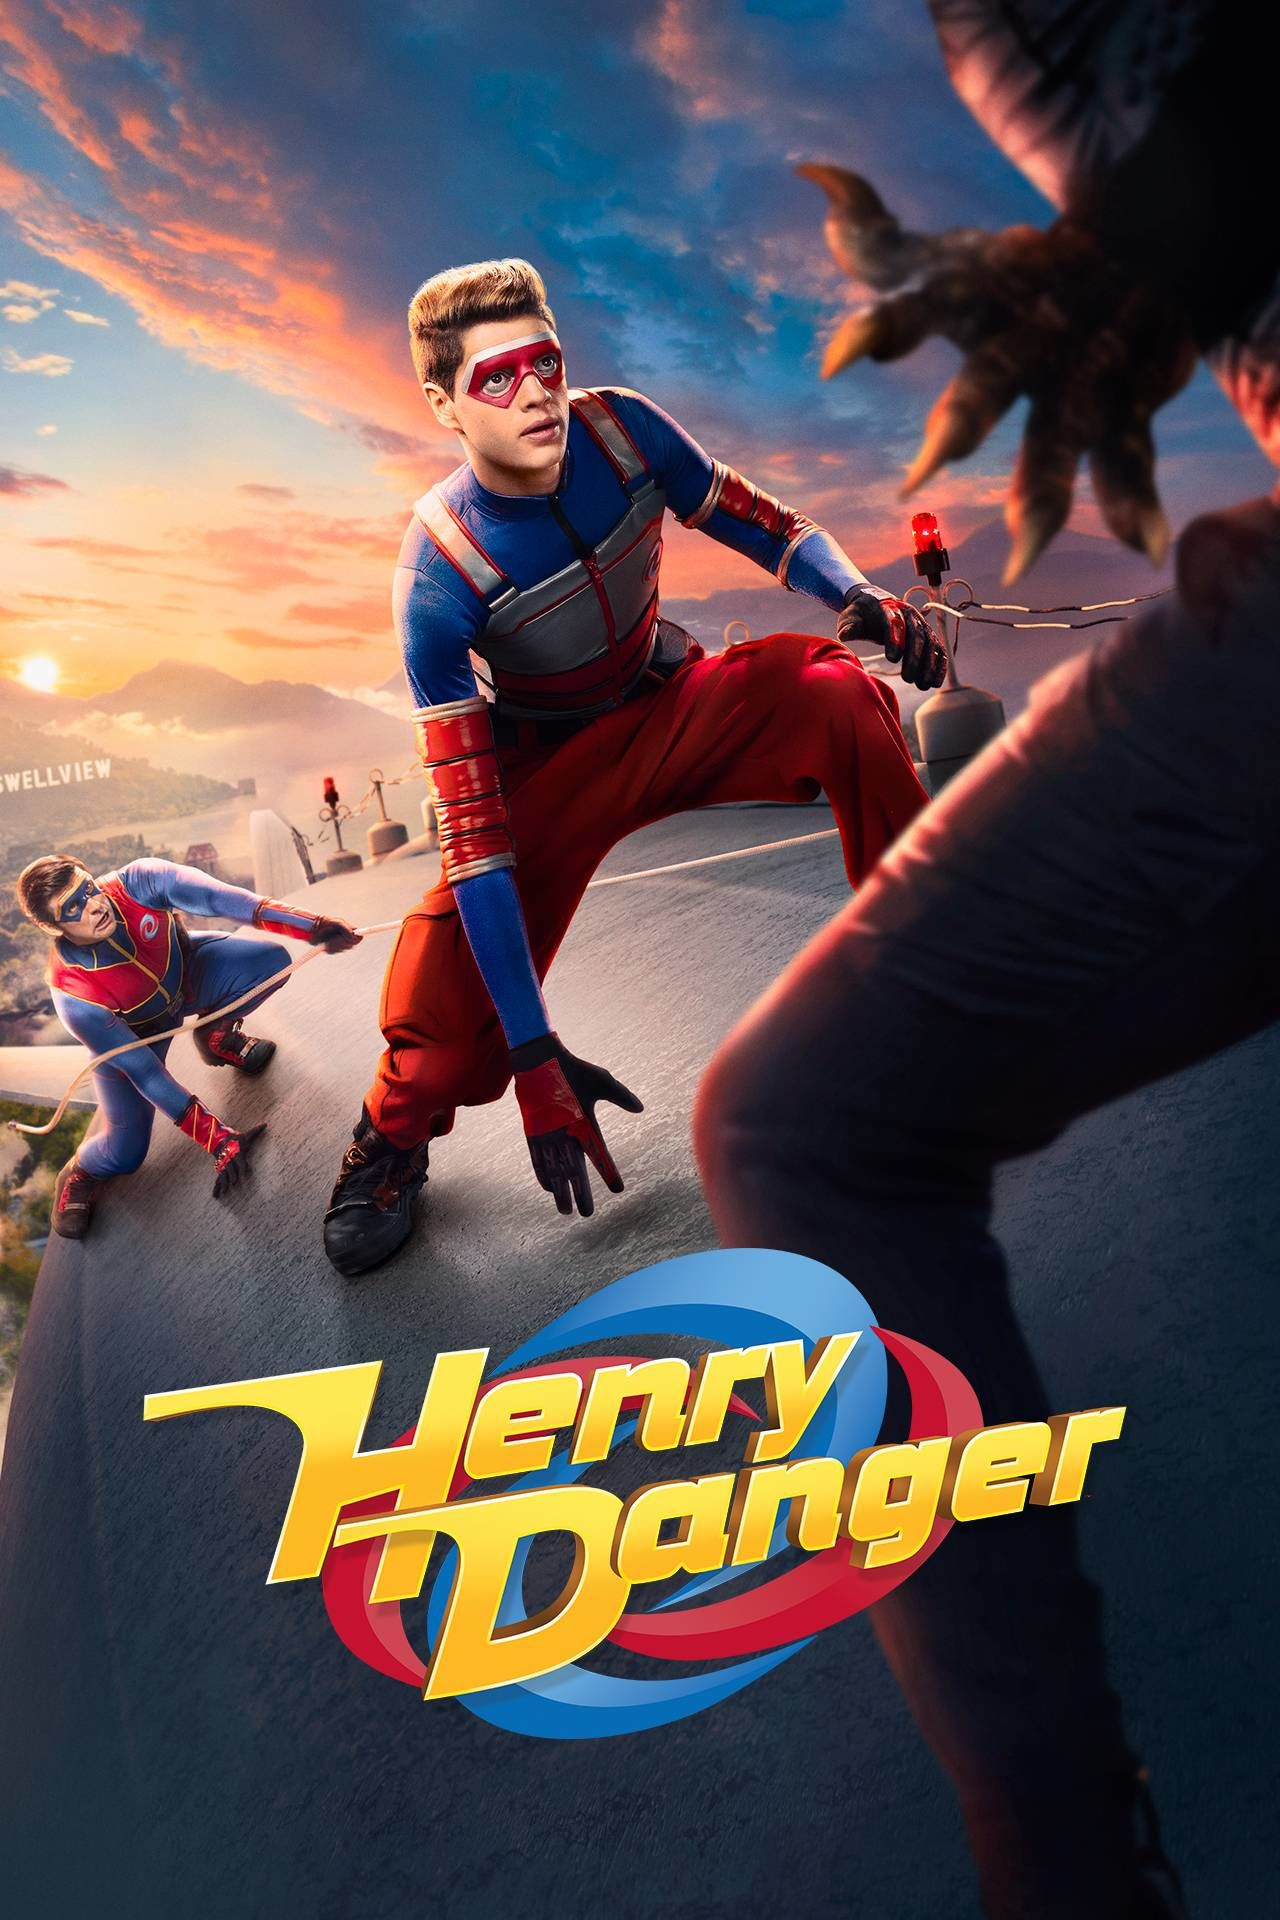 What Is Charlotte's Last Name In Henry Danger : charlotte's, henry, danger, Henry, Danger, TVmaze